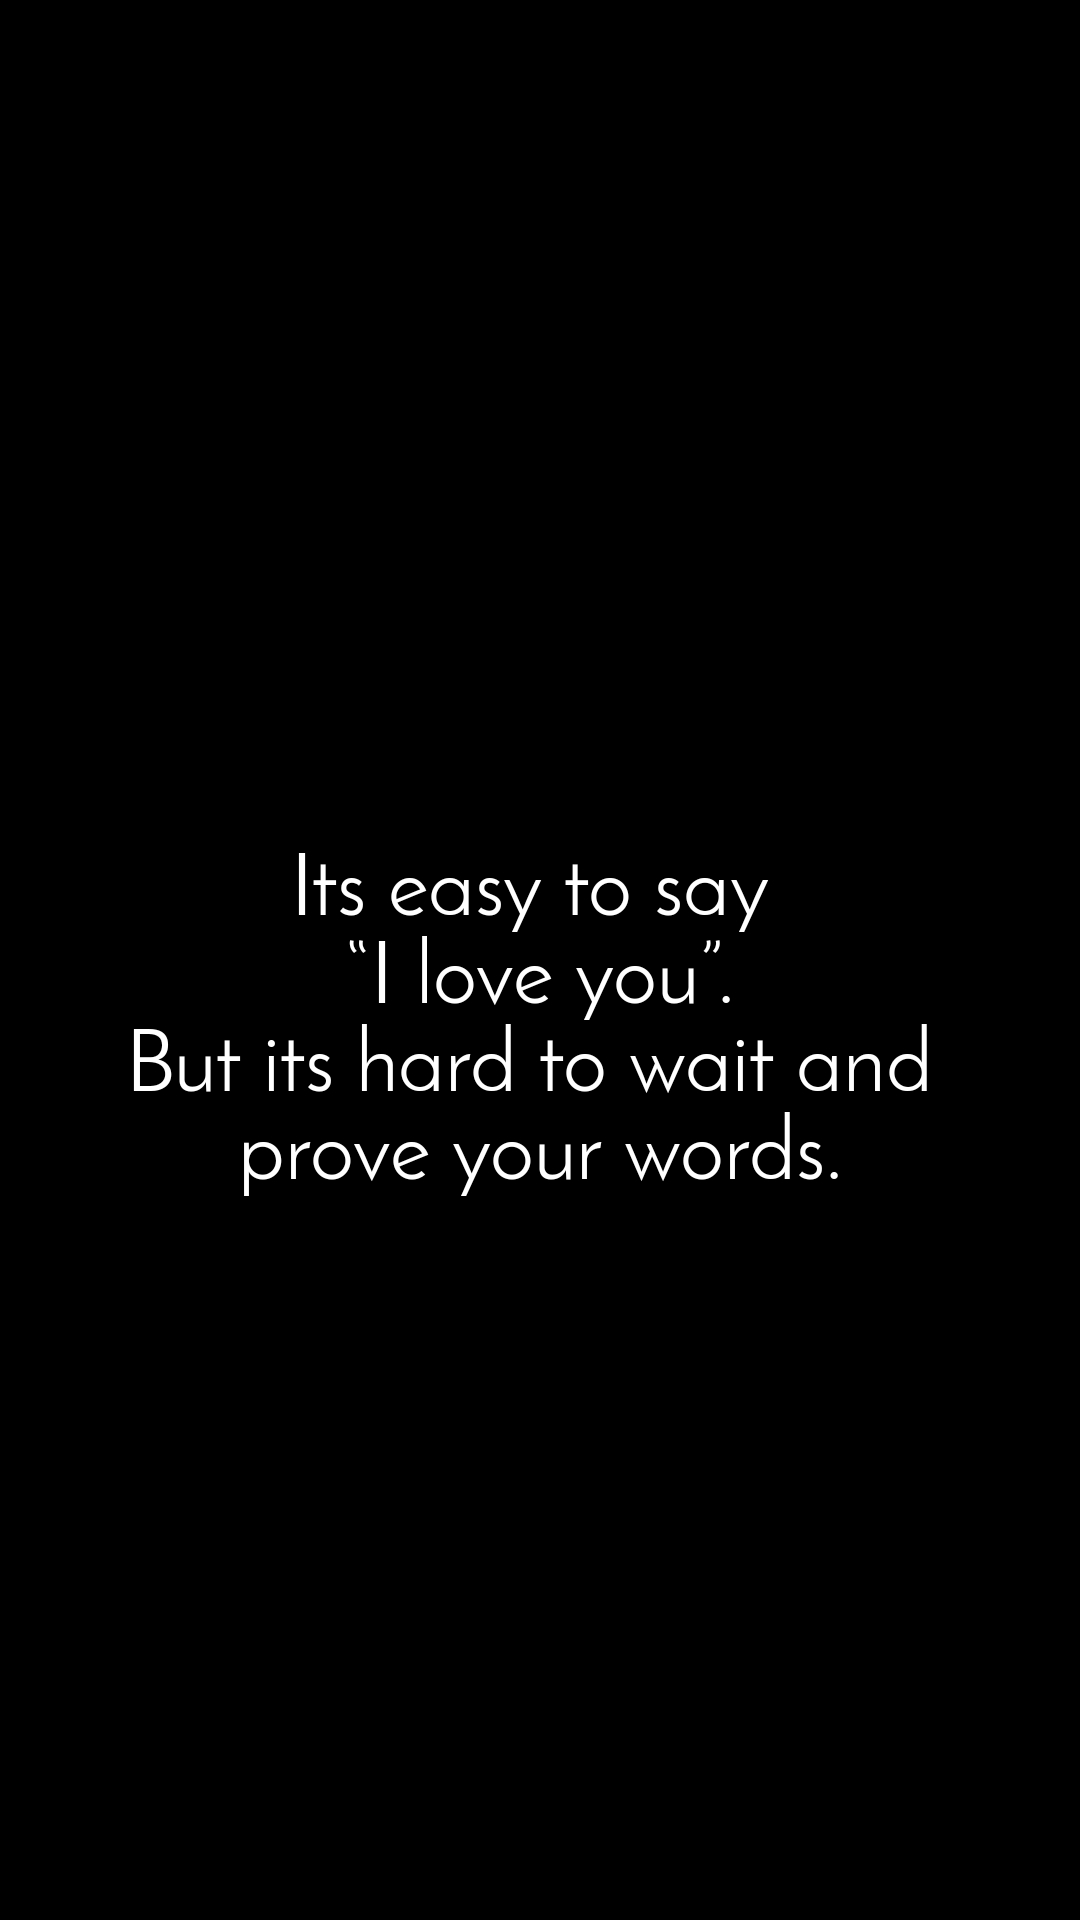 """Its easy to say  """"I love you"""".  But its hard to wait and   prove your words."""